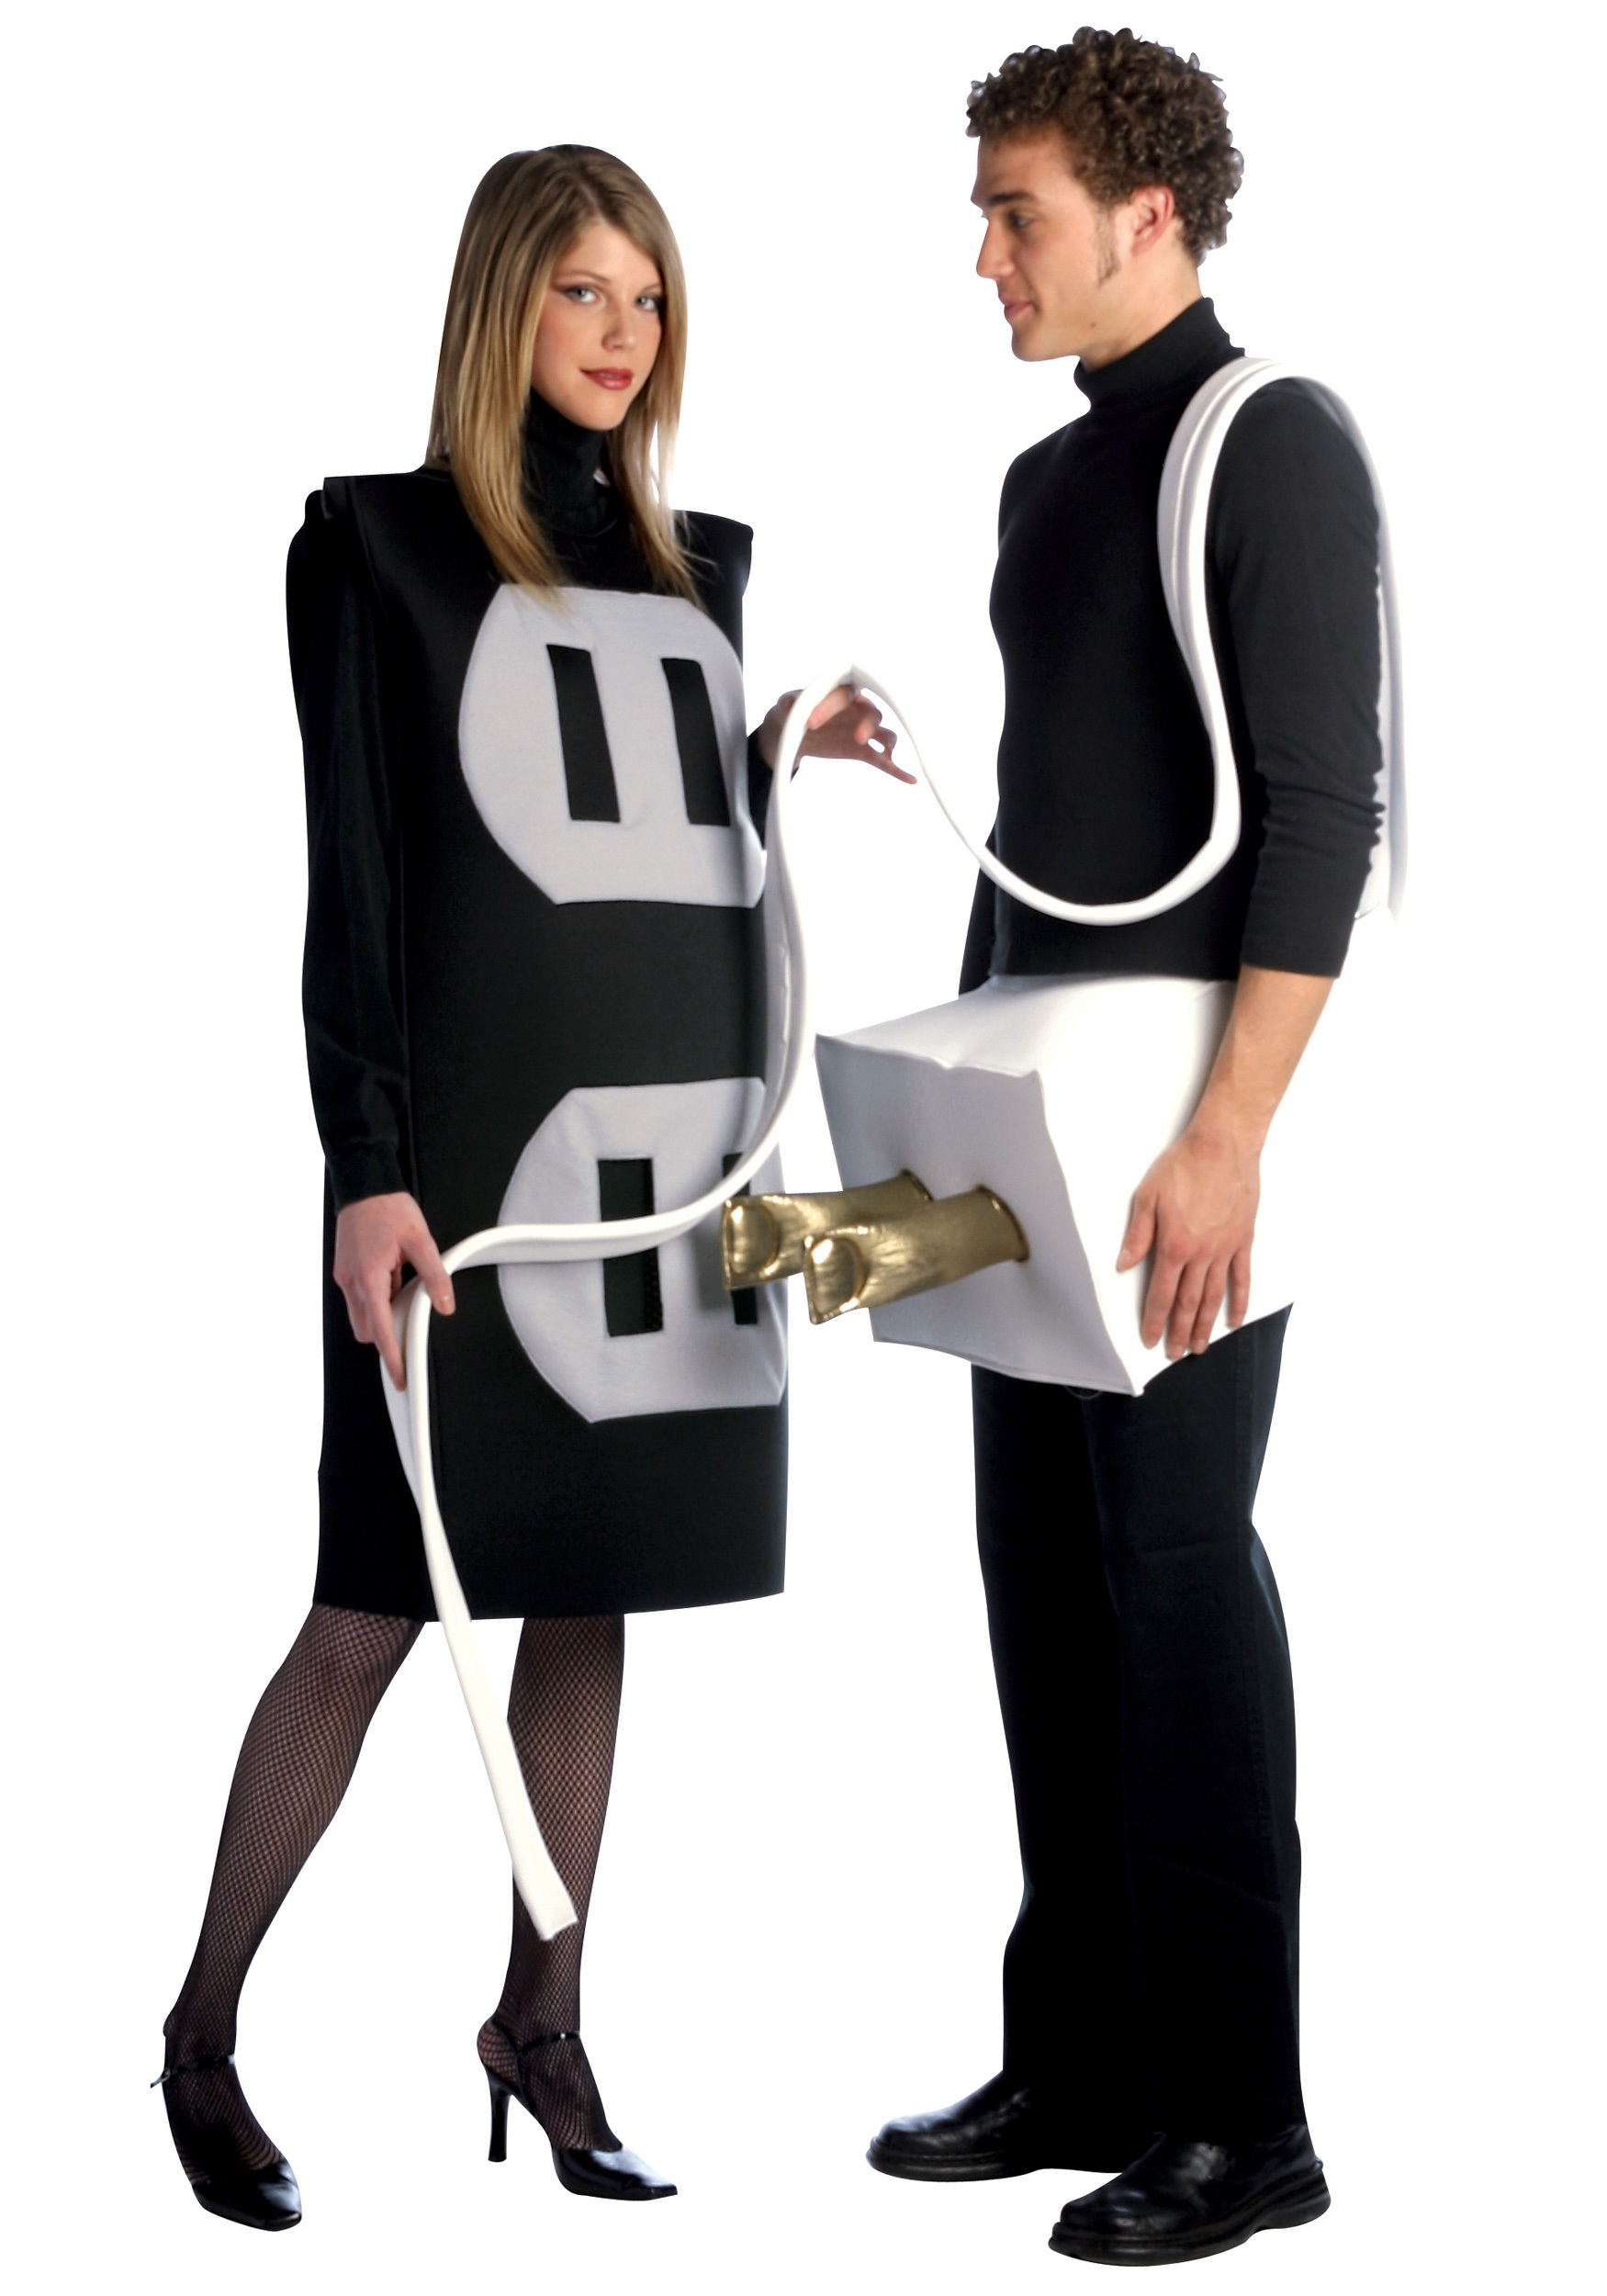 Plug and socket costume funny couples costume ideas - Deguisement couple halloween ...